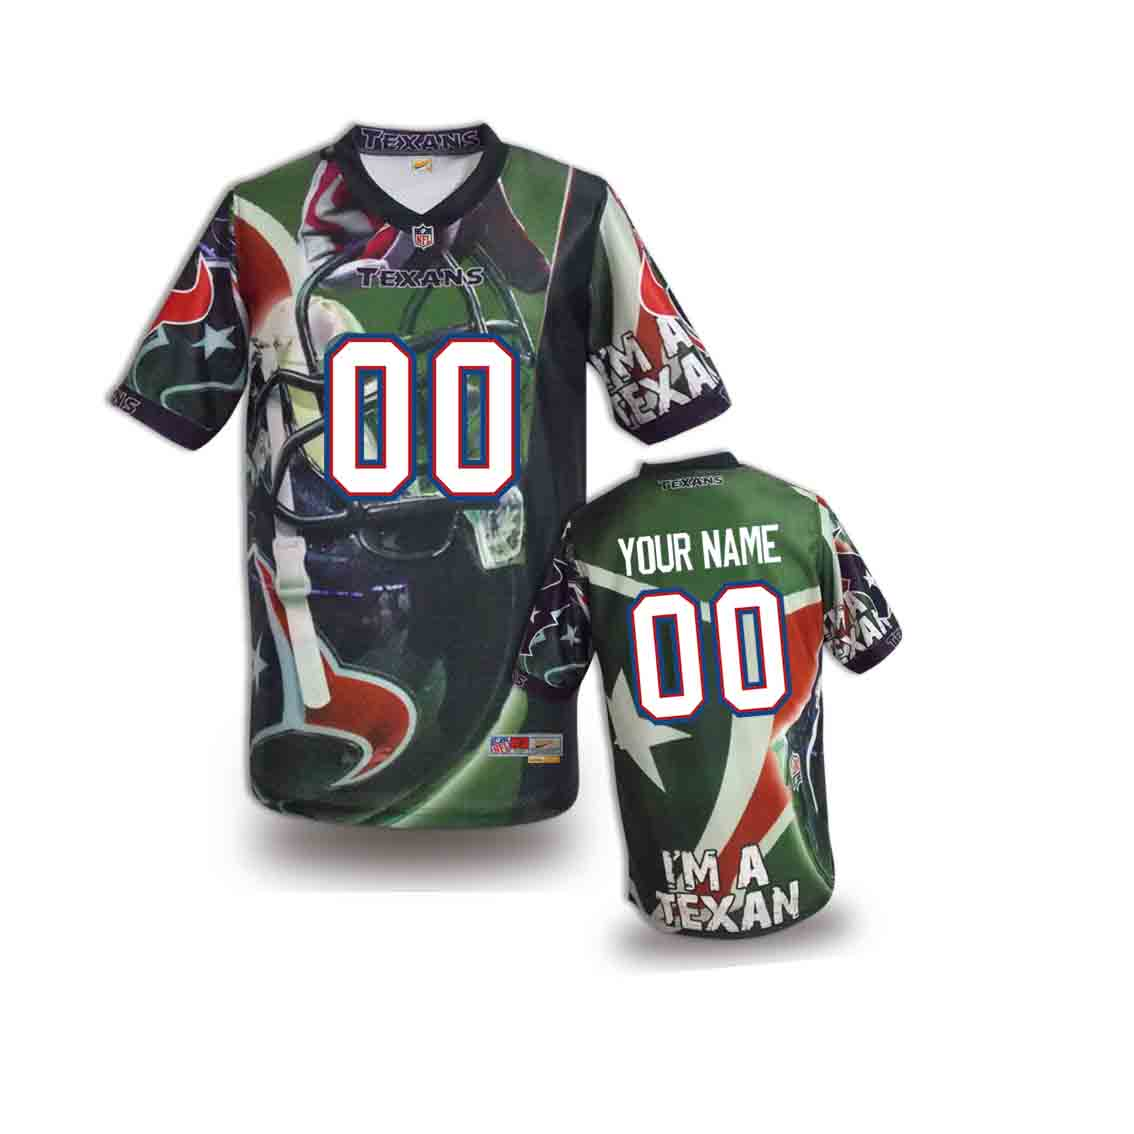 Nike Texans Customized Fashion Stitched Youth Jerseys02